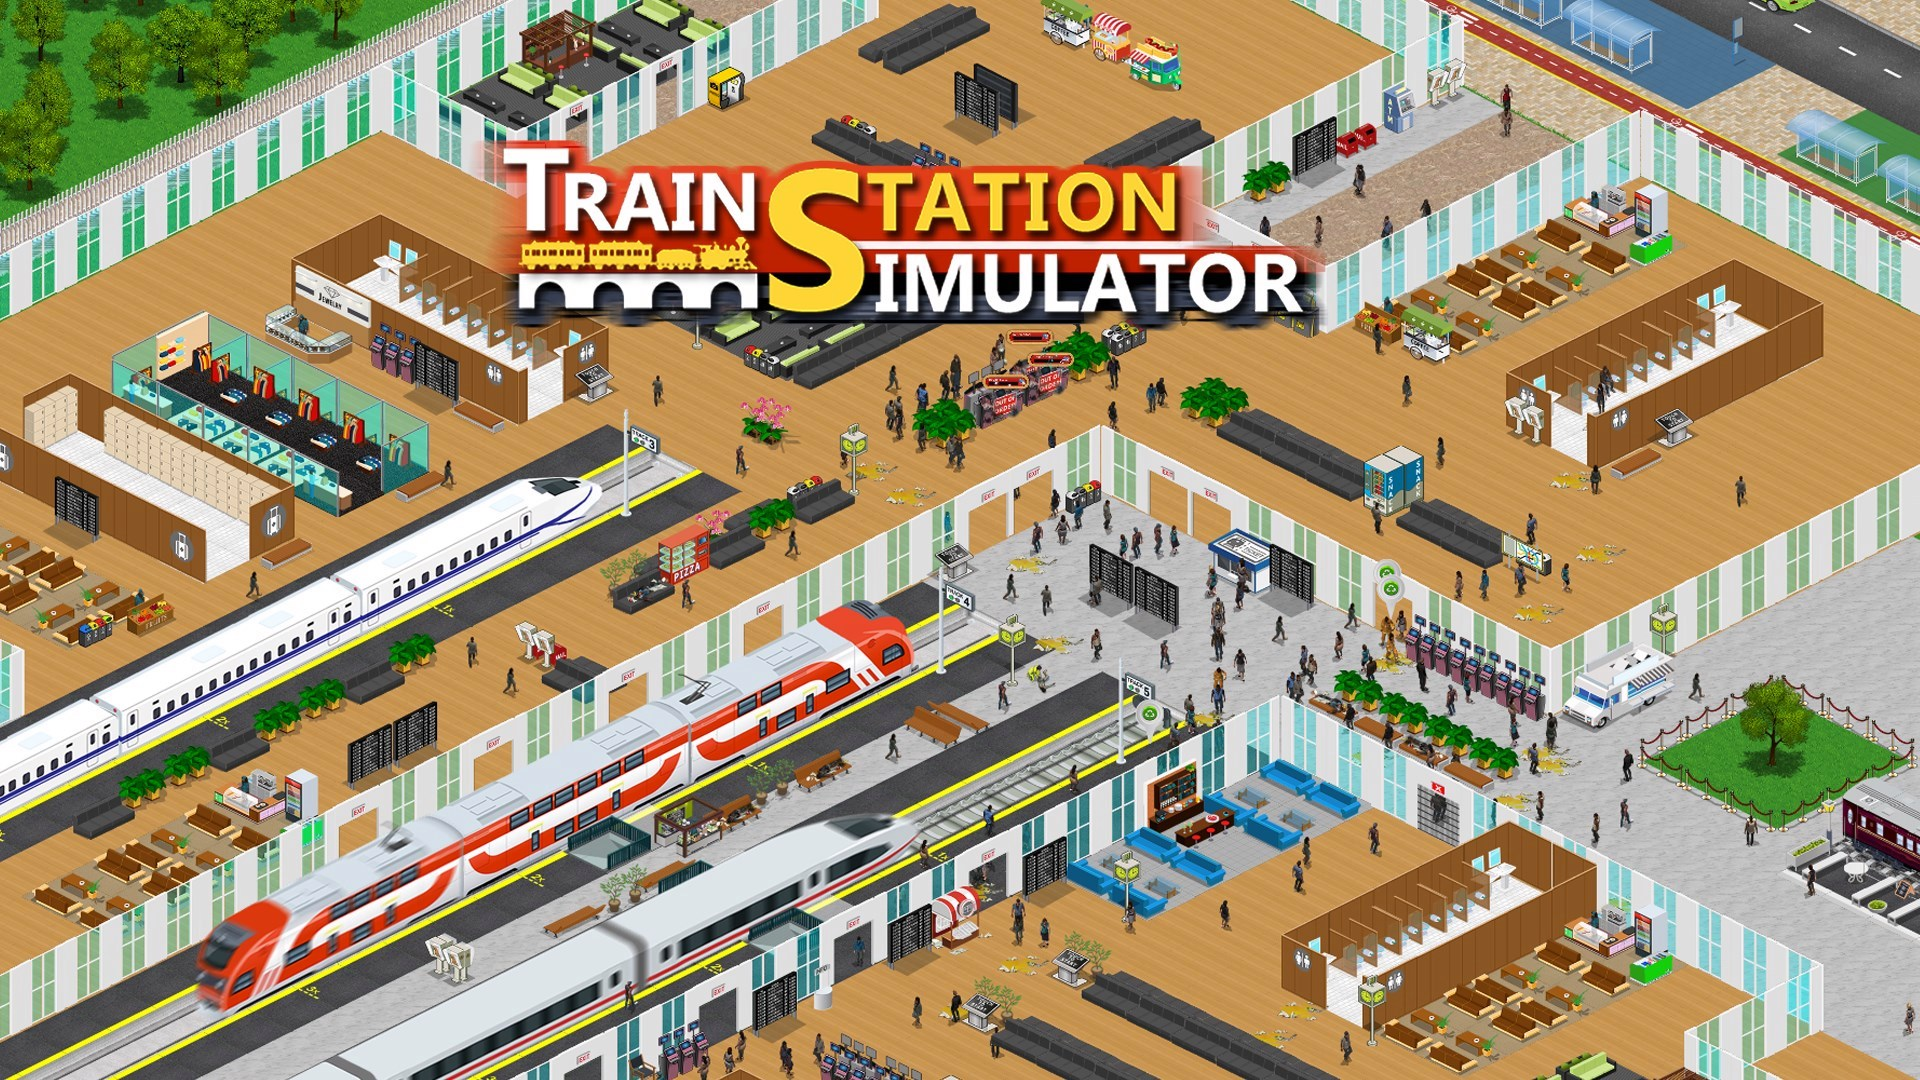 Train Station Simulator Is Now Available For Xbox One And Xbox Series X|S 1